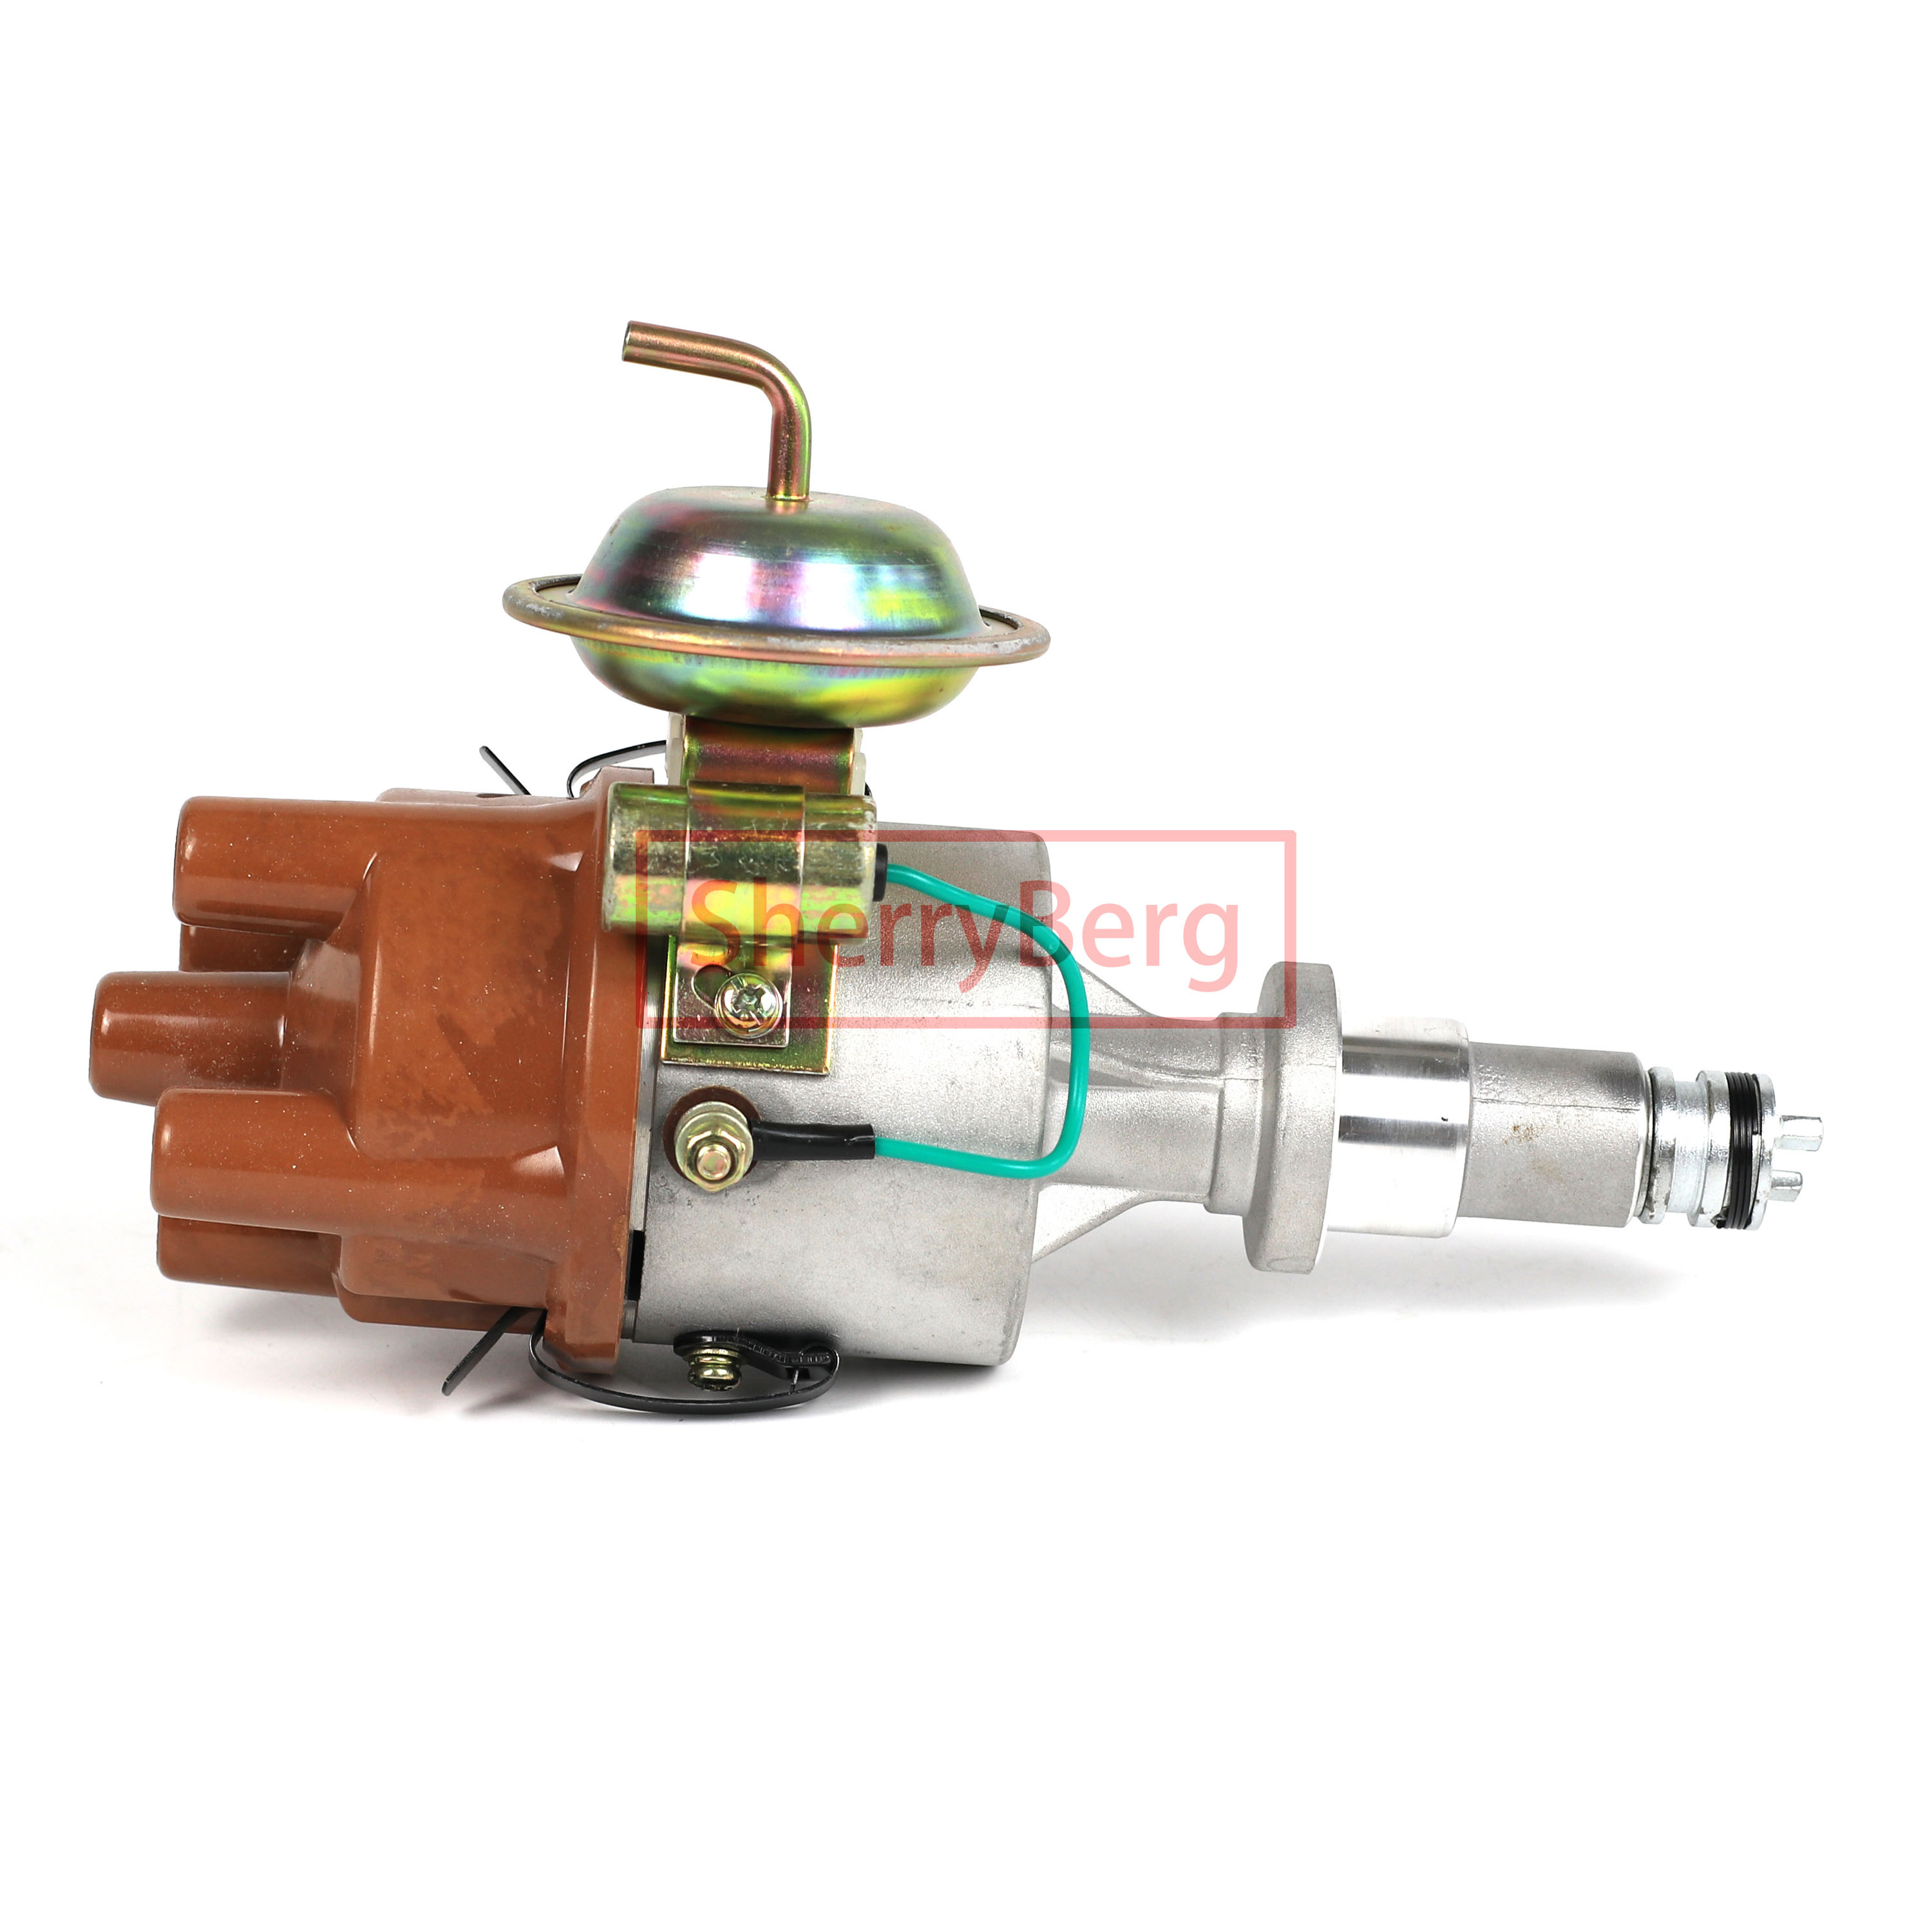 SHERRYBERG Automobile Distributor for RENAULT R4 R8 R10 R12 R15 Ignition 0 7-1 3L 1961-1992